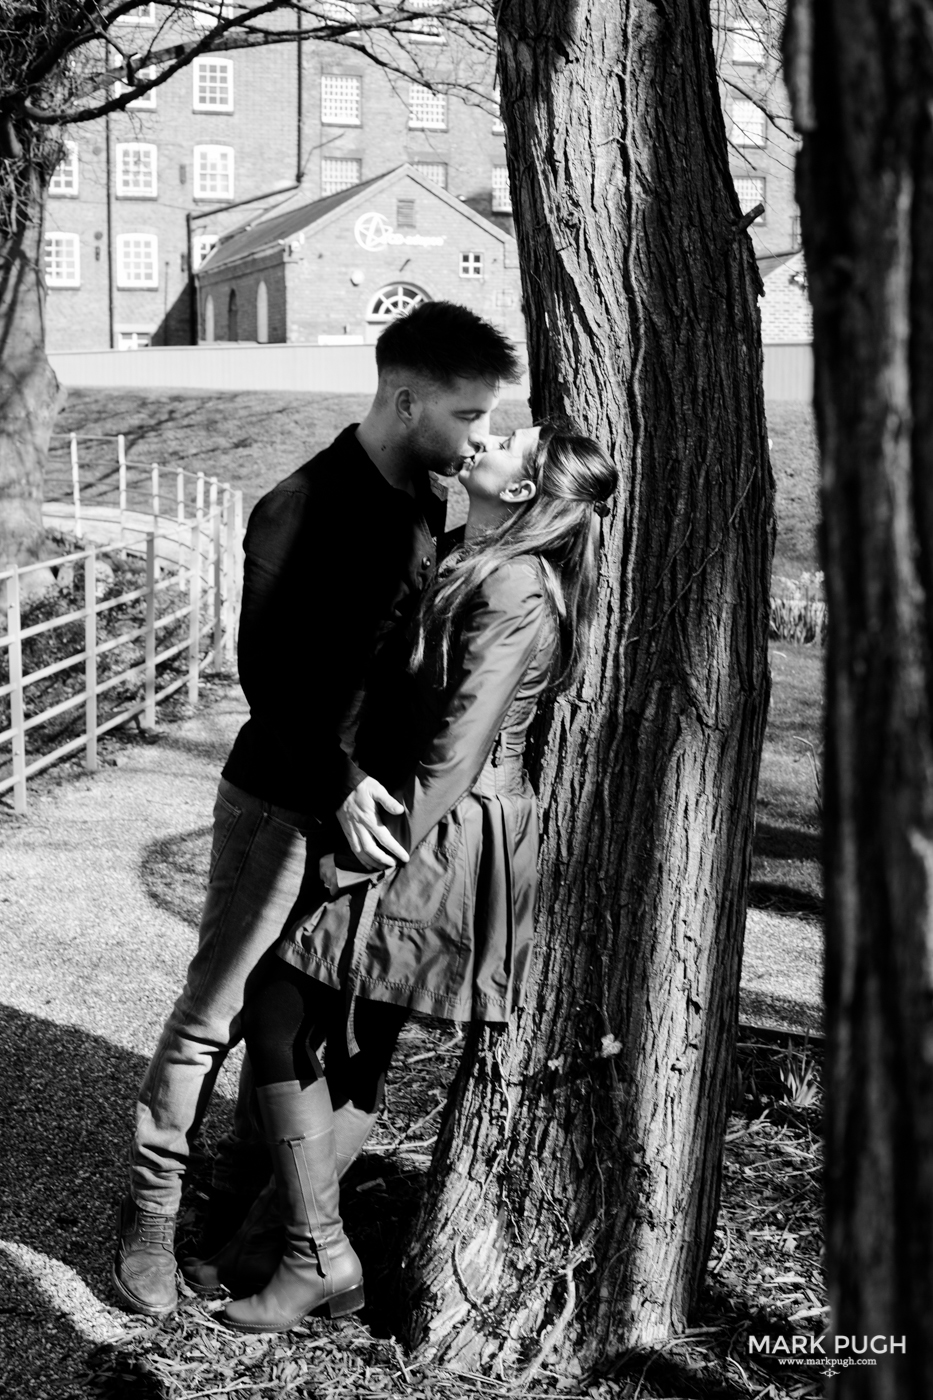 080 - Jo and Jordan - preWED engagement photography at The West Mill DE22 1DZ by www.markpugh.com Mark Pugh 0164.JPG